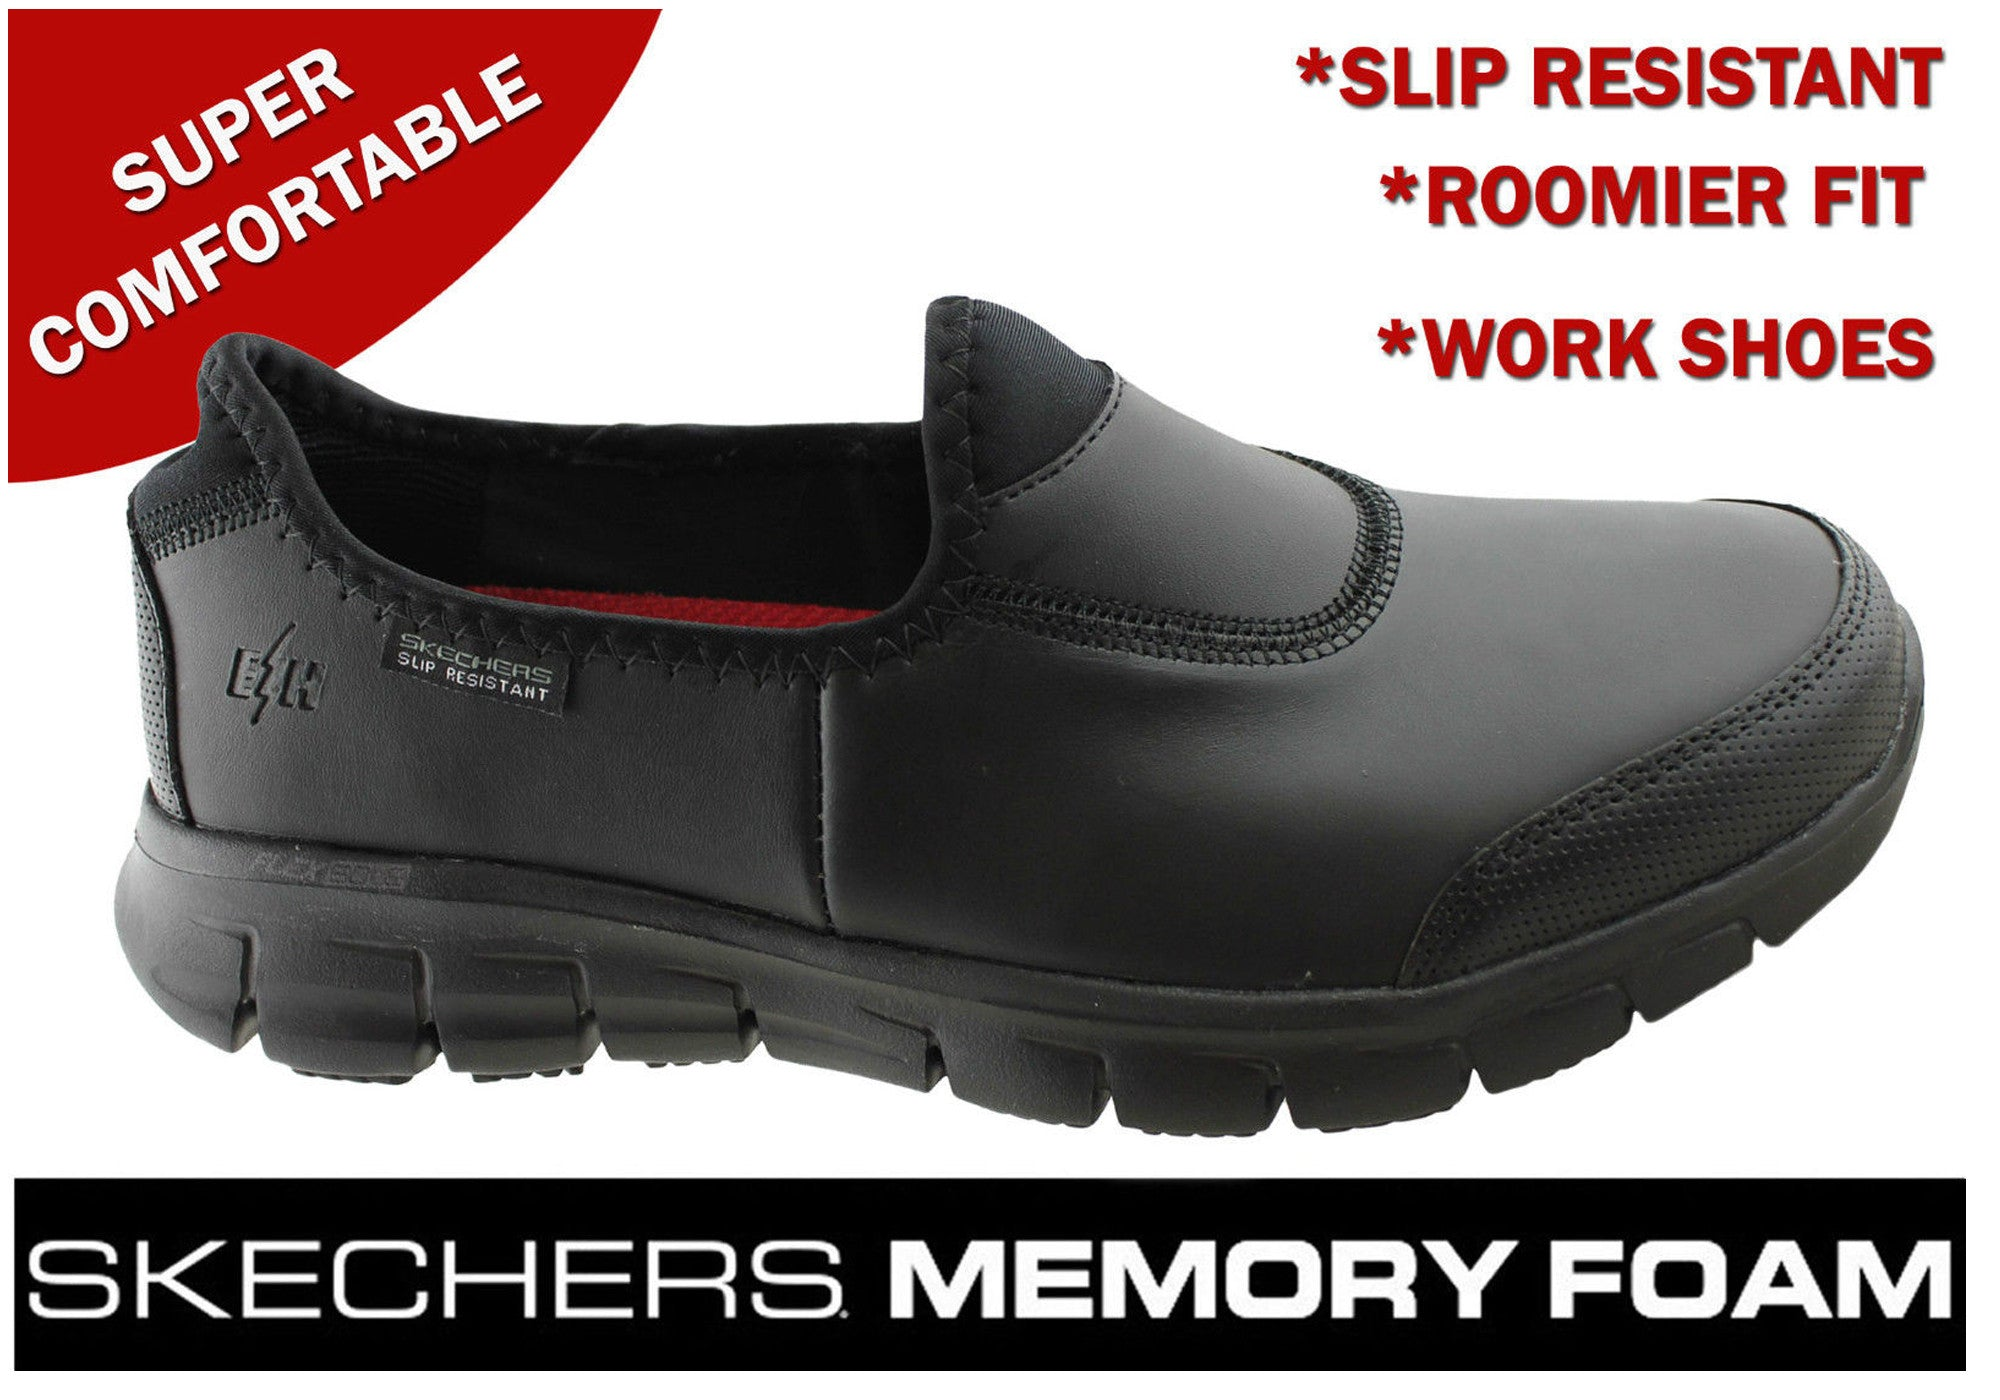 Details about Brand New Skechers Womens Sure Track Slip Resistant Comfort Leather Work Shoes